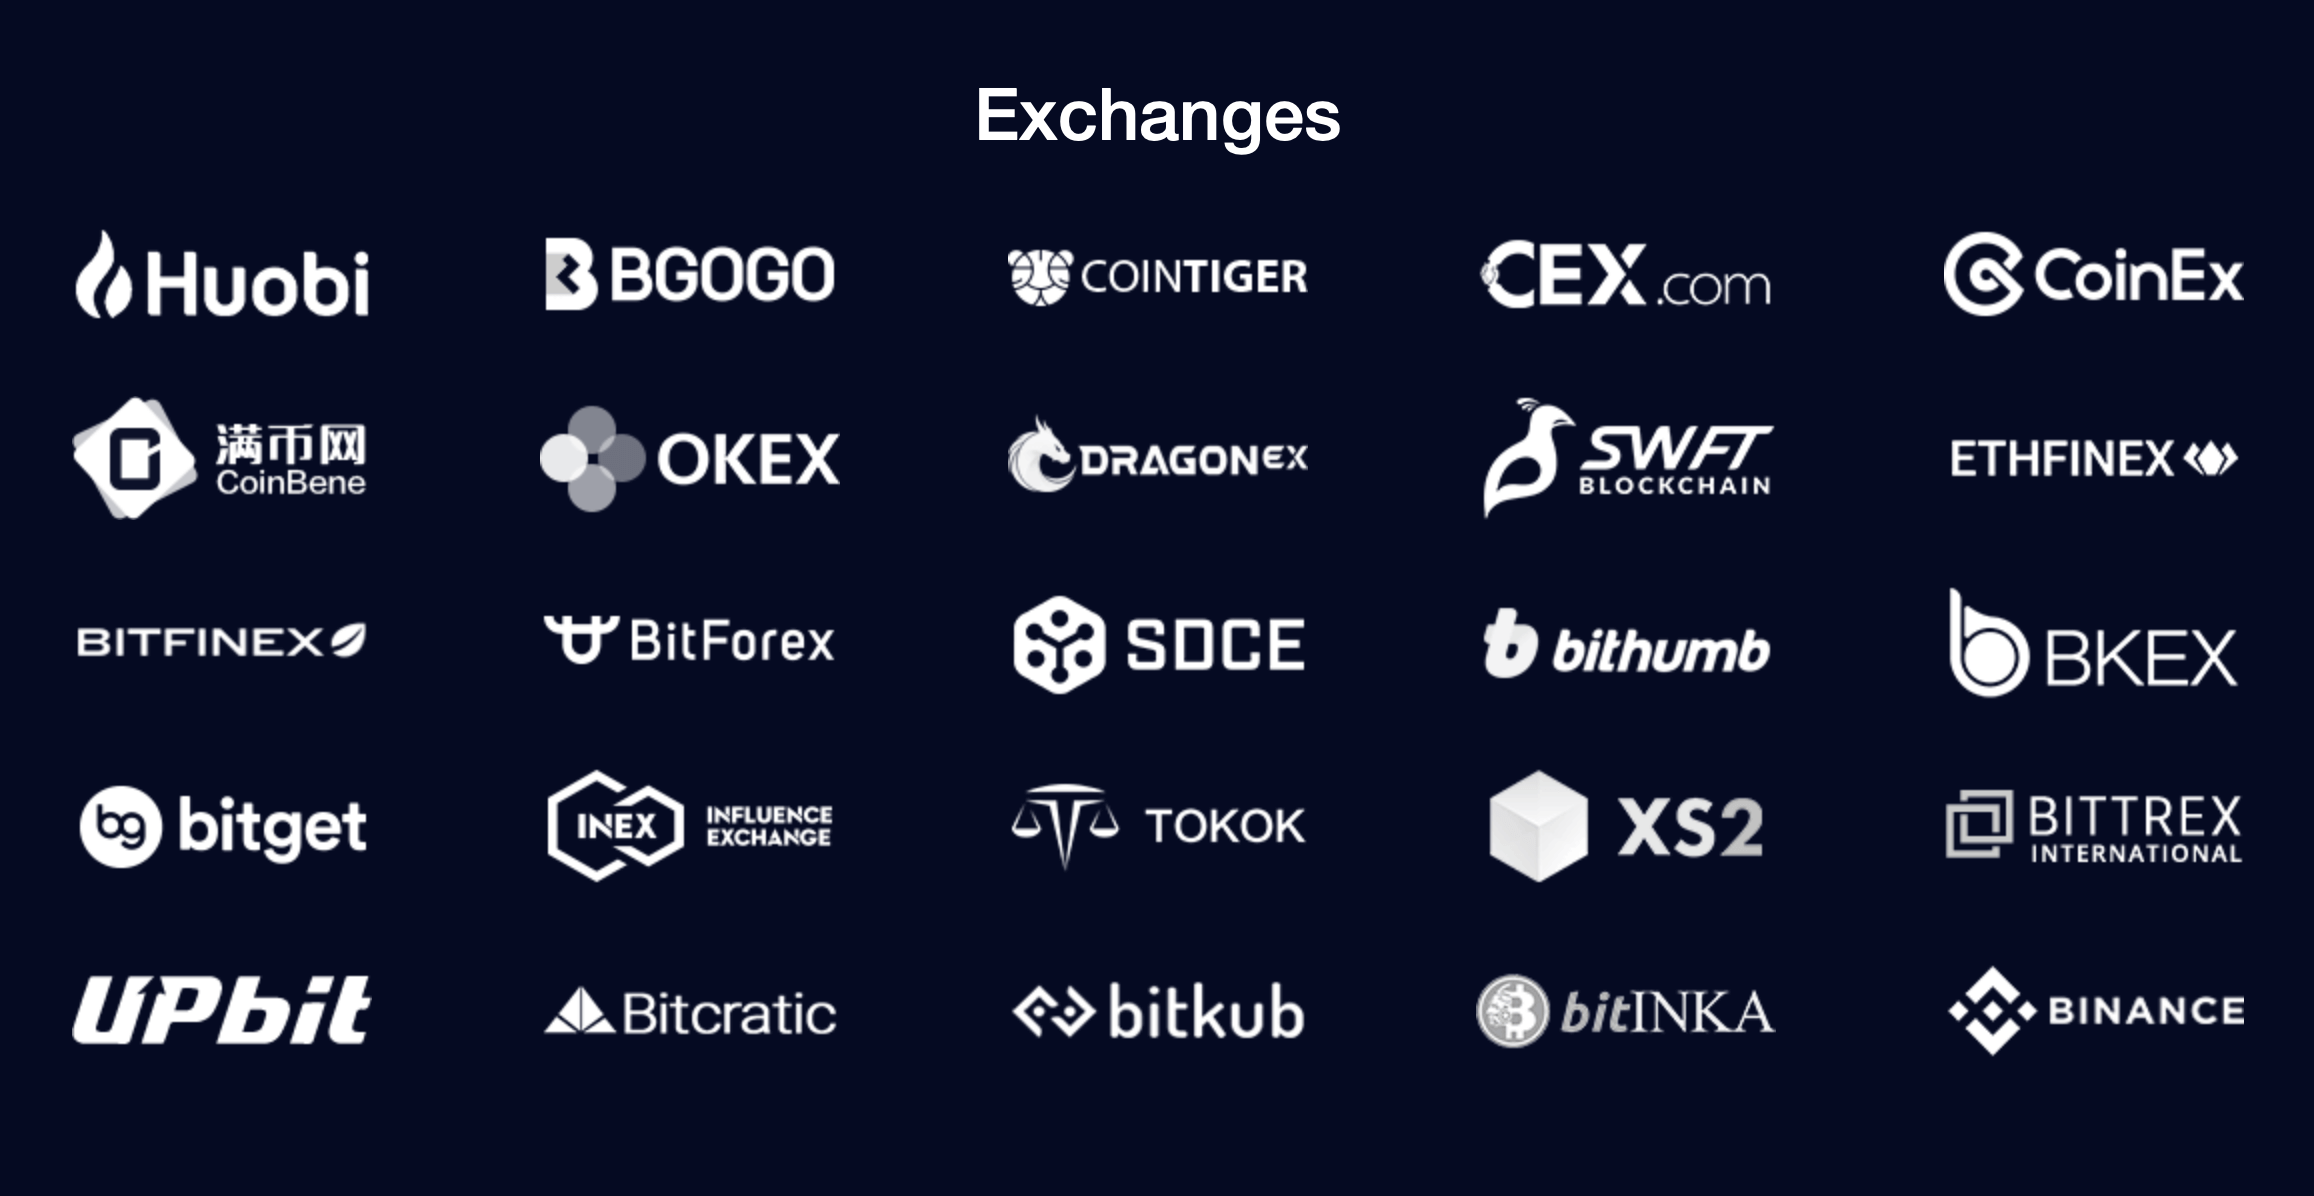 ctxc exchanges